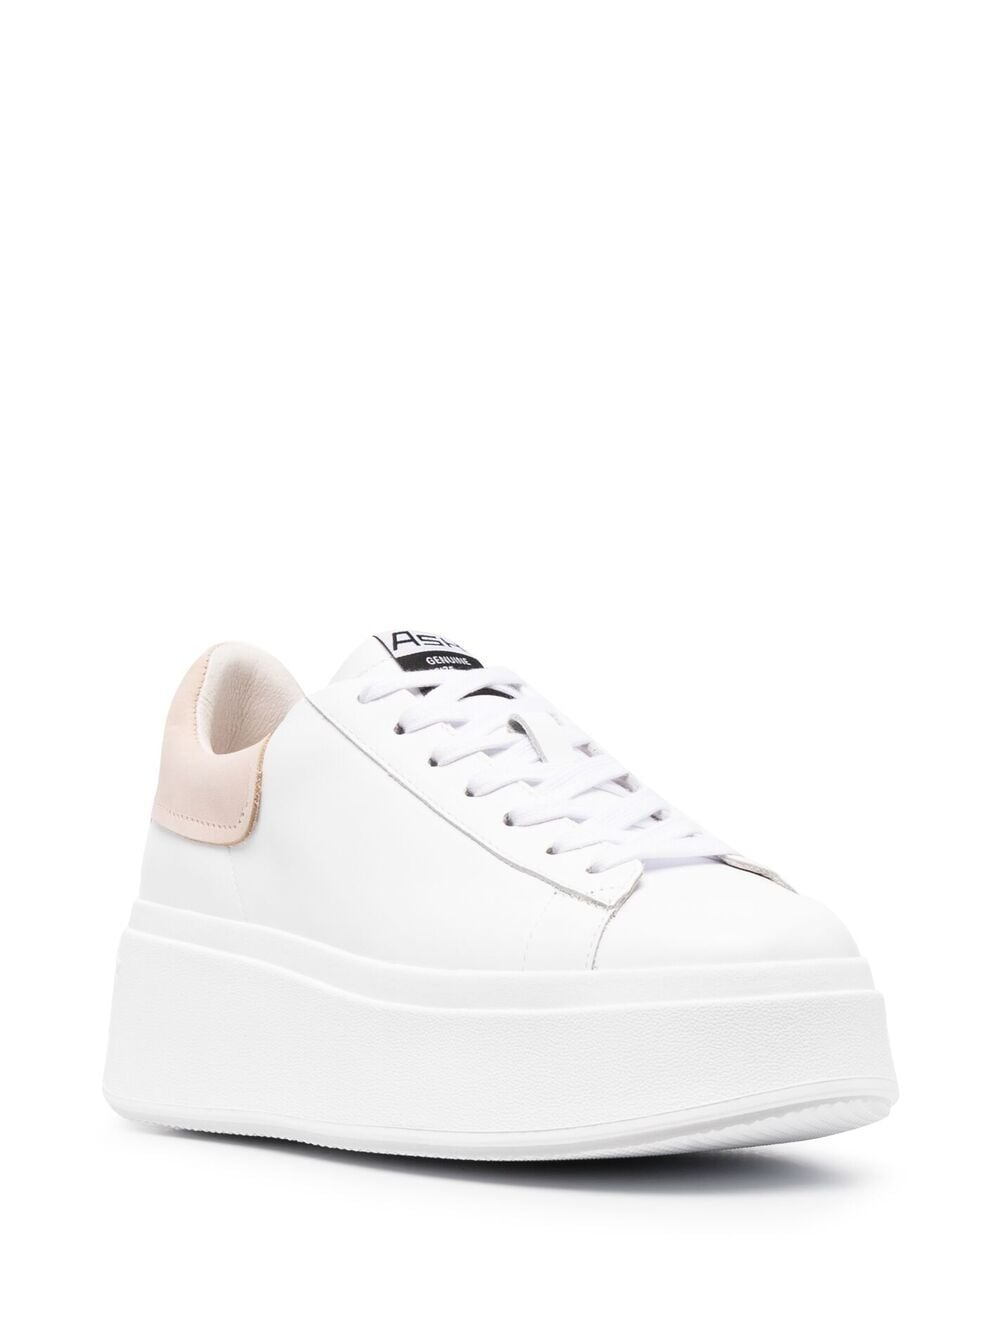 Sneakers Moby03 ASH